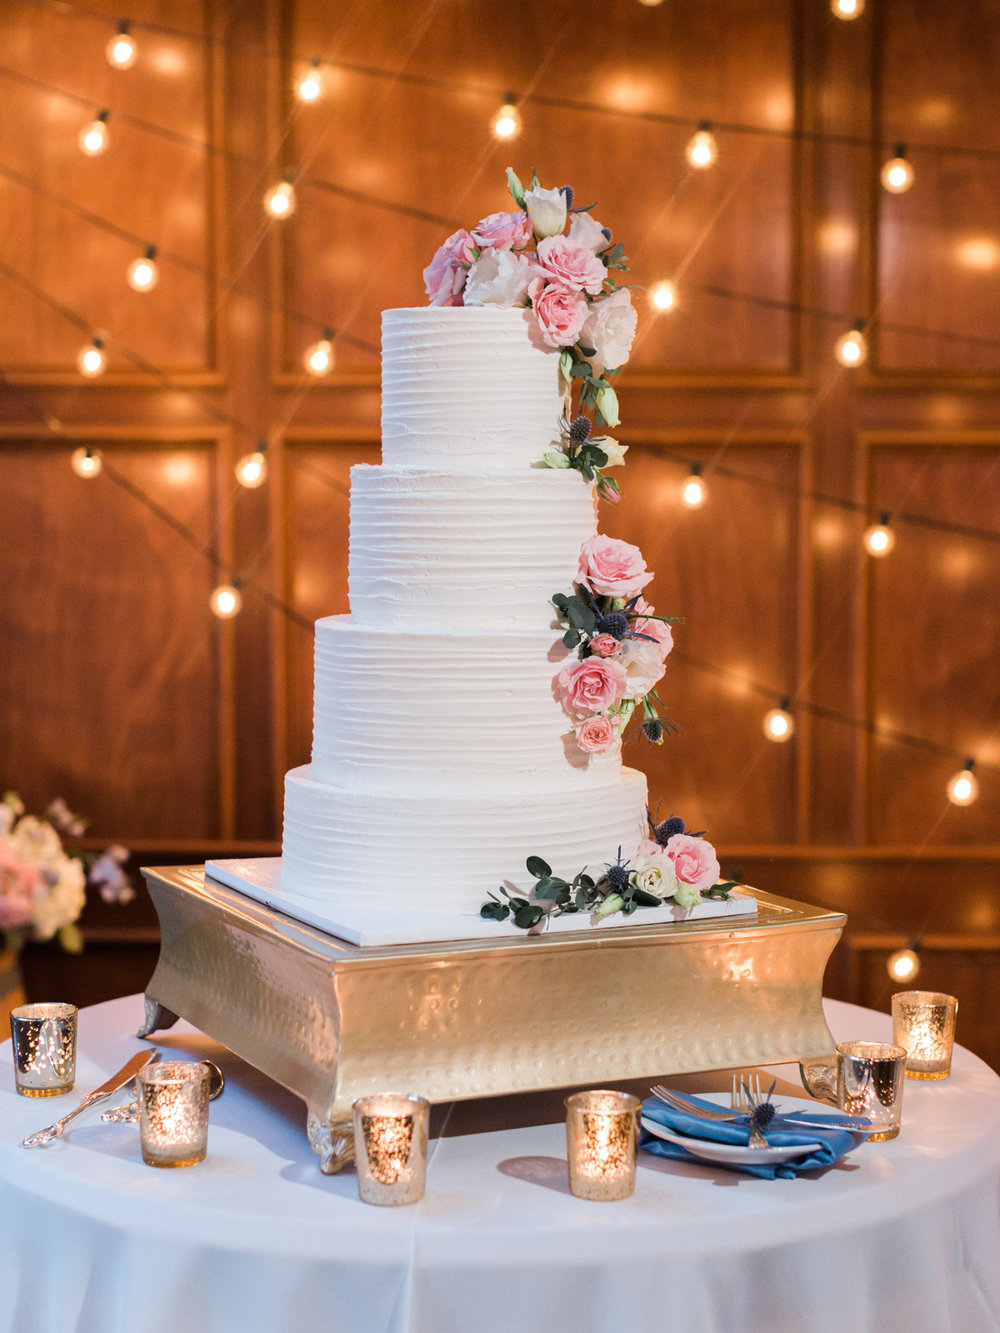 Beautiful wedding cake by Laura Marie's Cakes | Harrison & Jocelyne's gorgeous Temecula wedding day at Wiens Family Cellars captured by Temecula wedding photographers Betsy & John